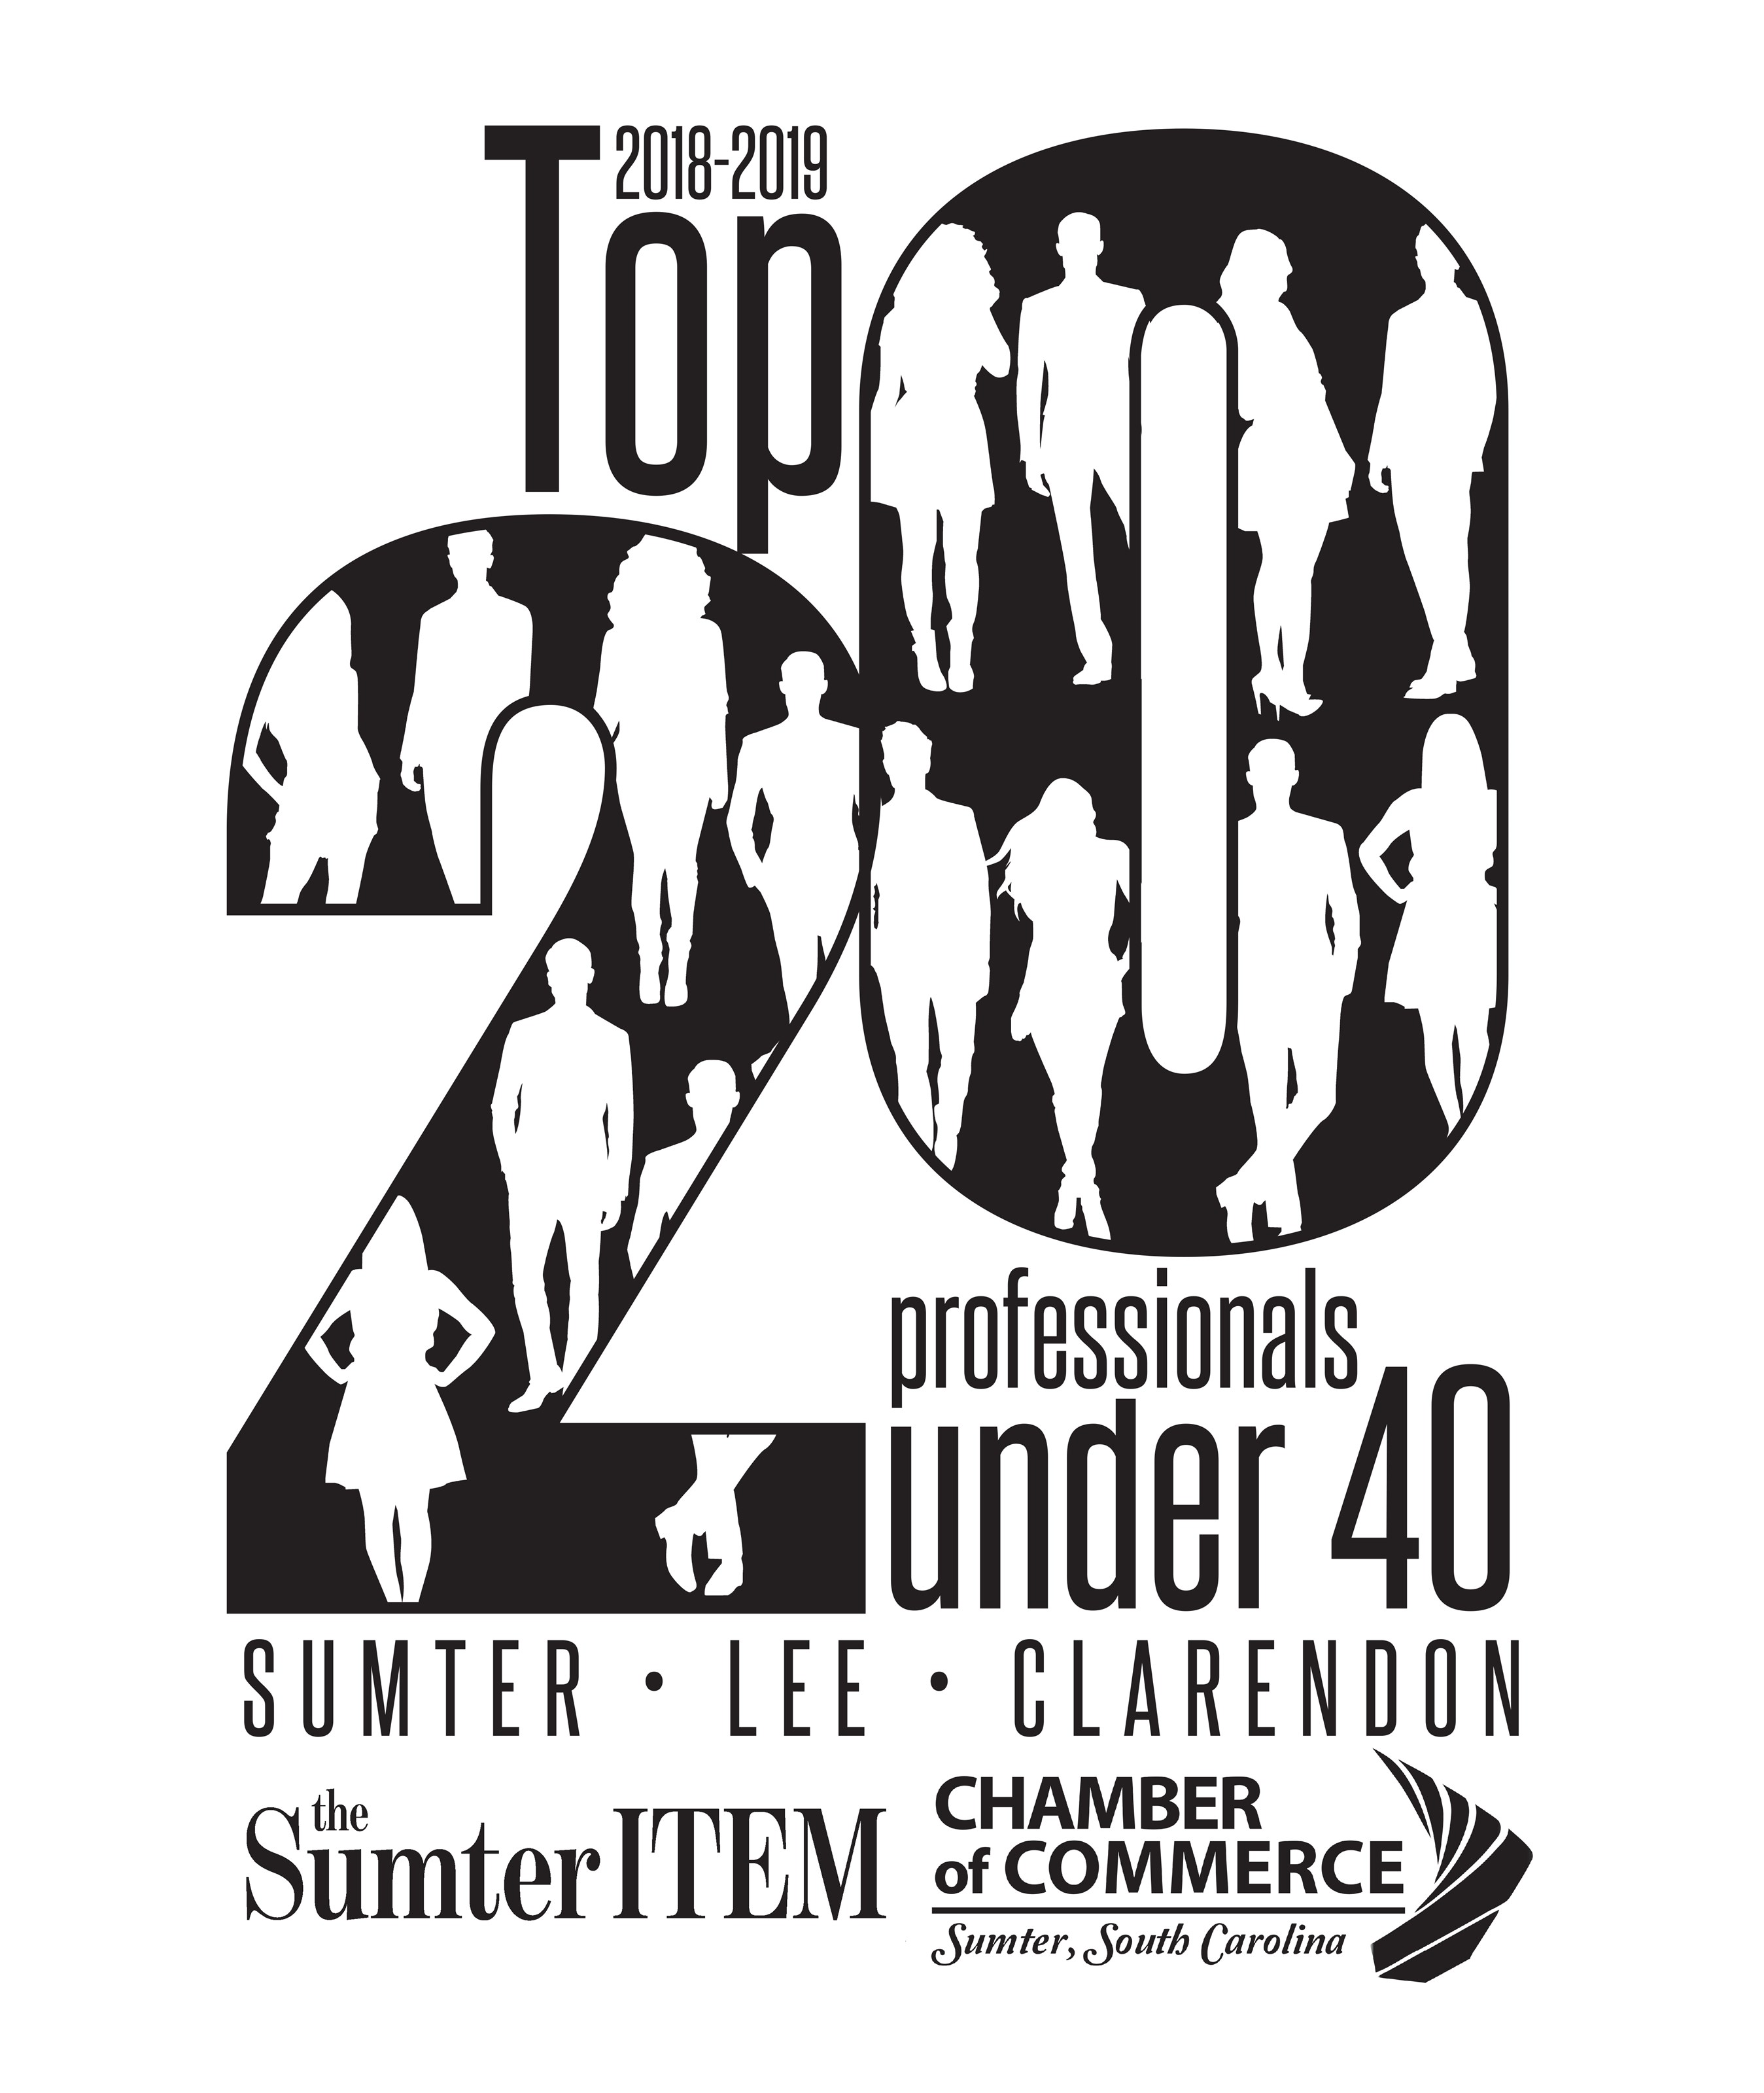 Selected Honorees Will Be Featured In Our Annual Magazine And Honored At An Exclusive Event Sumter Each Honoree Receive A Free